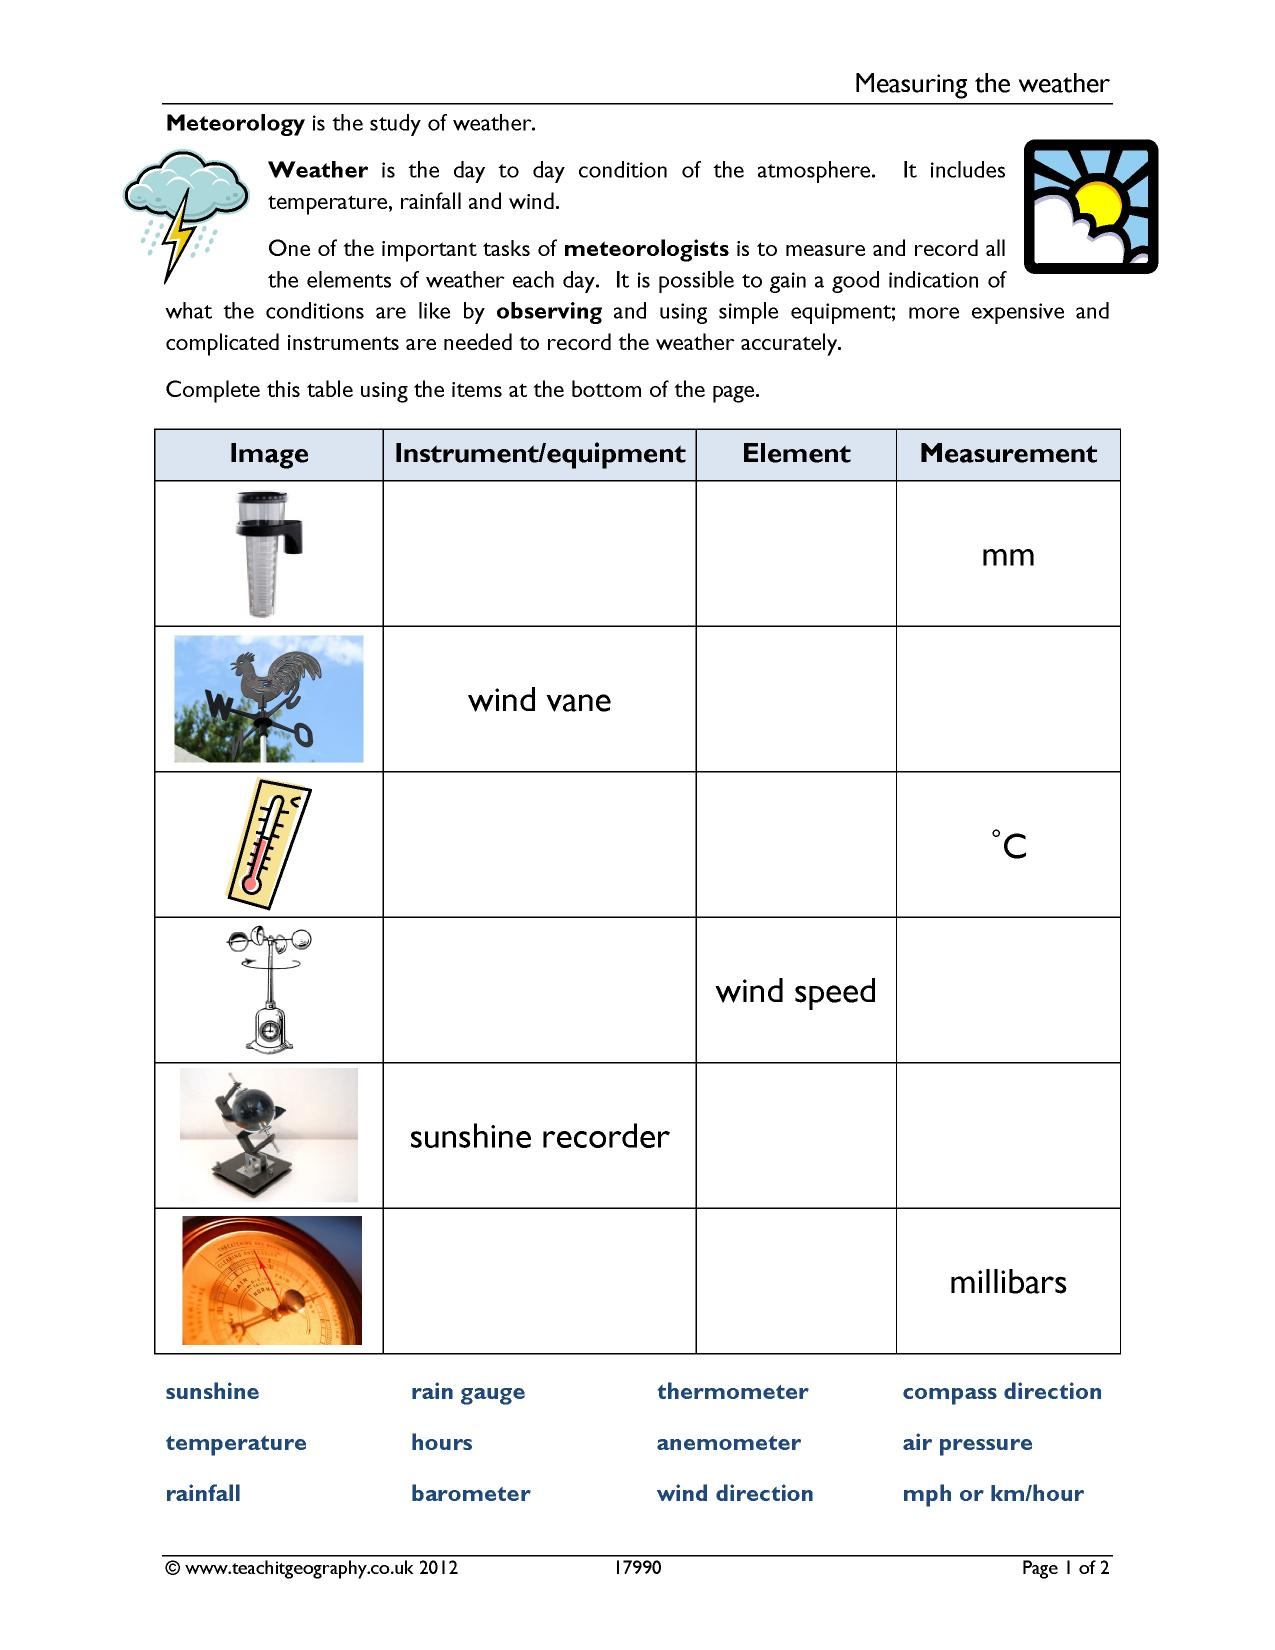 Worksheet On Weather Instruments